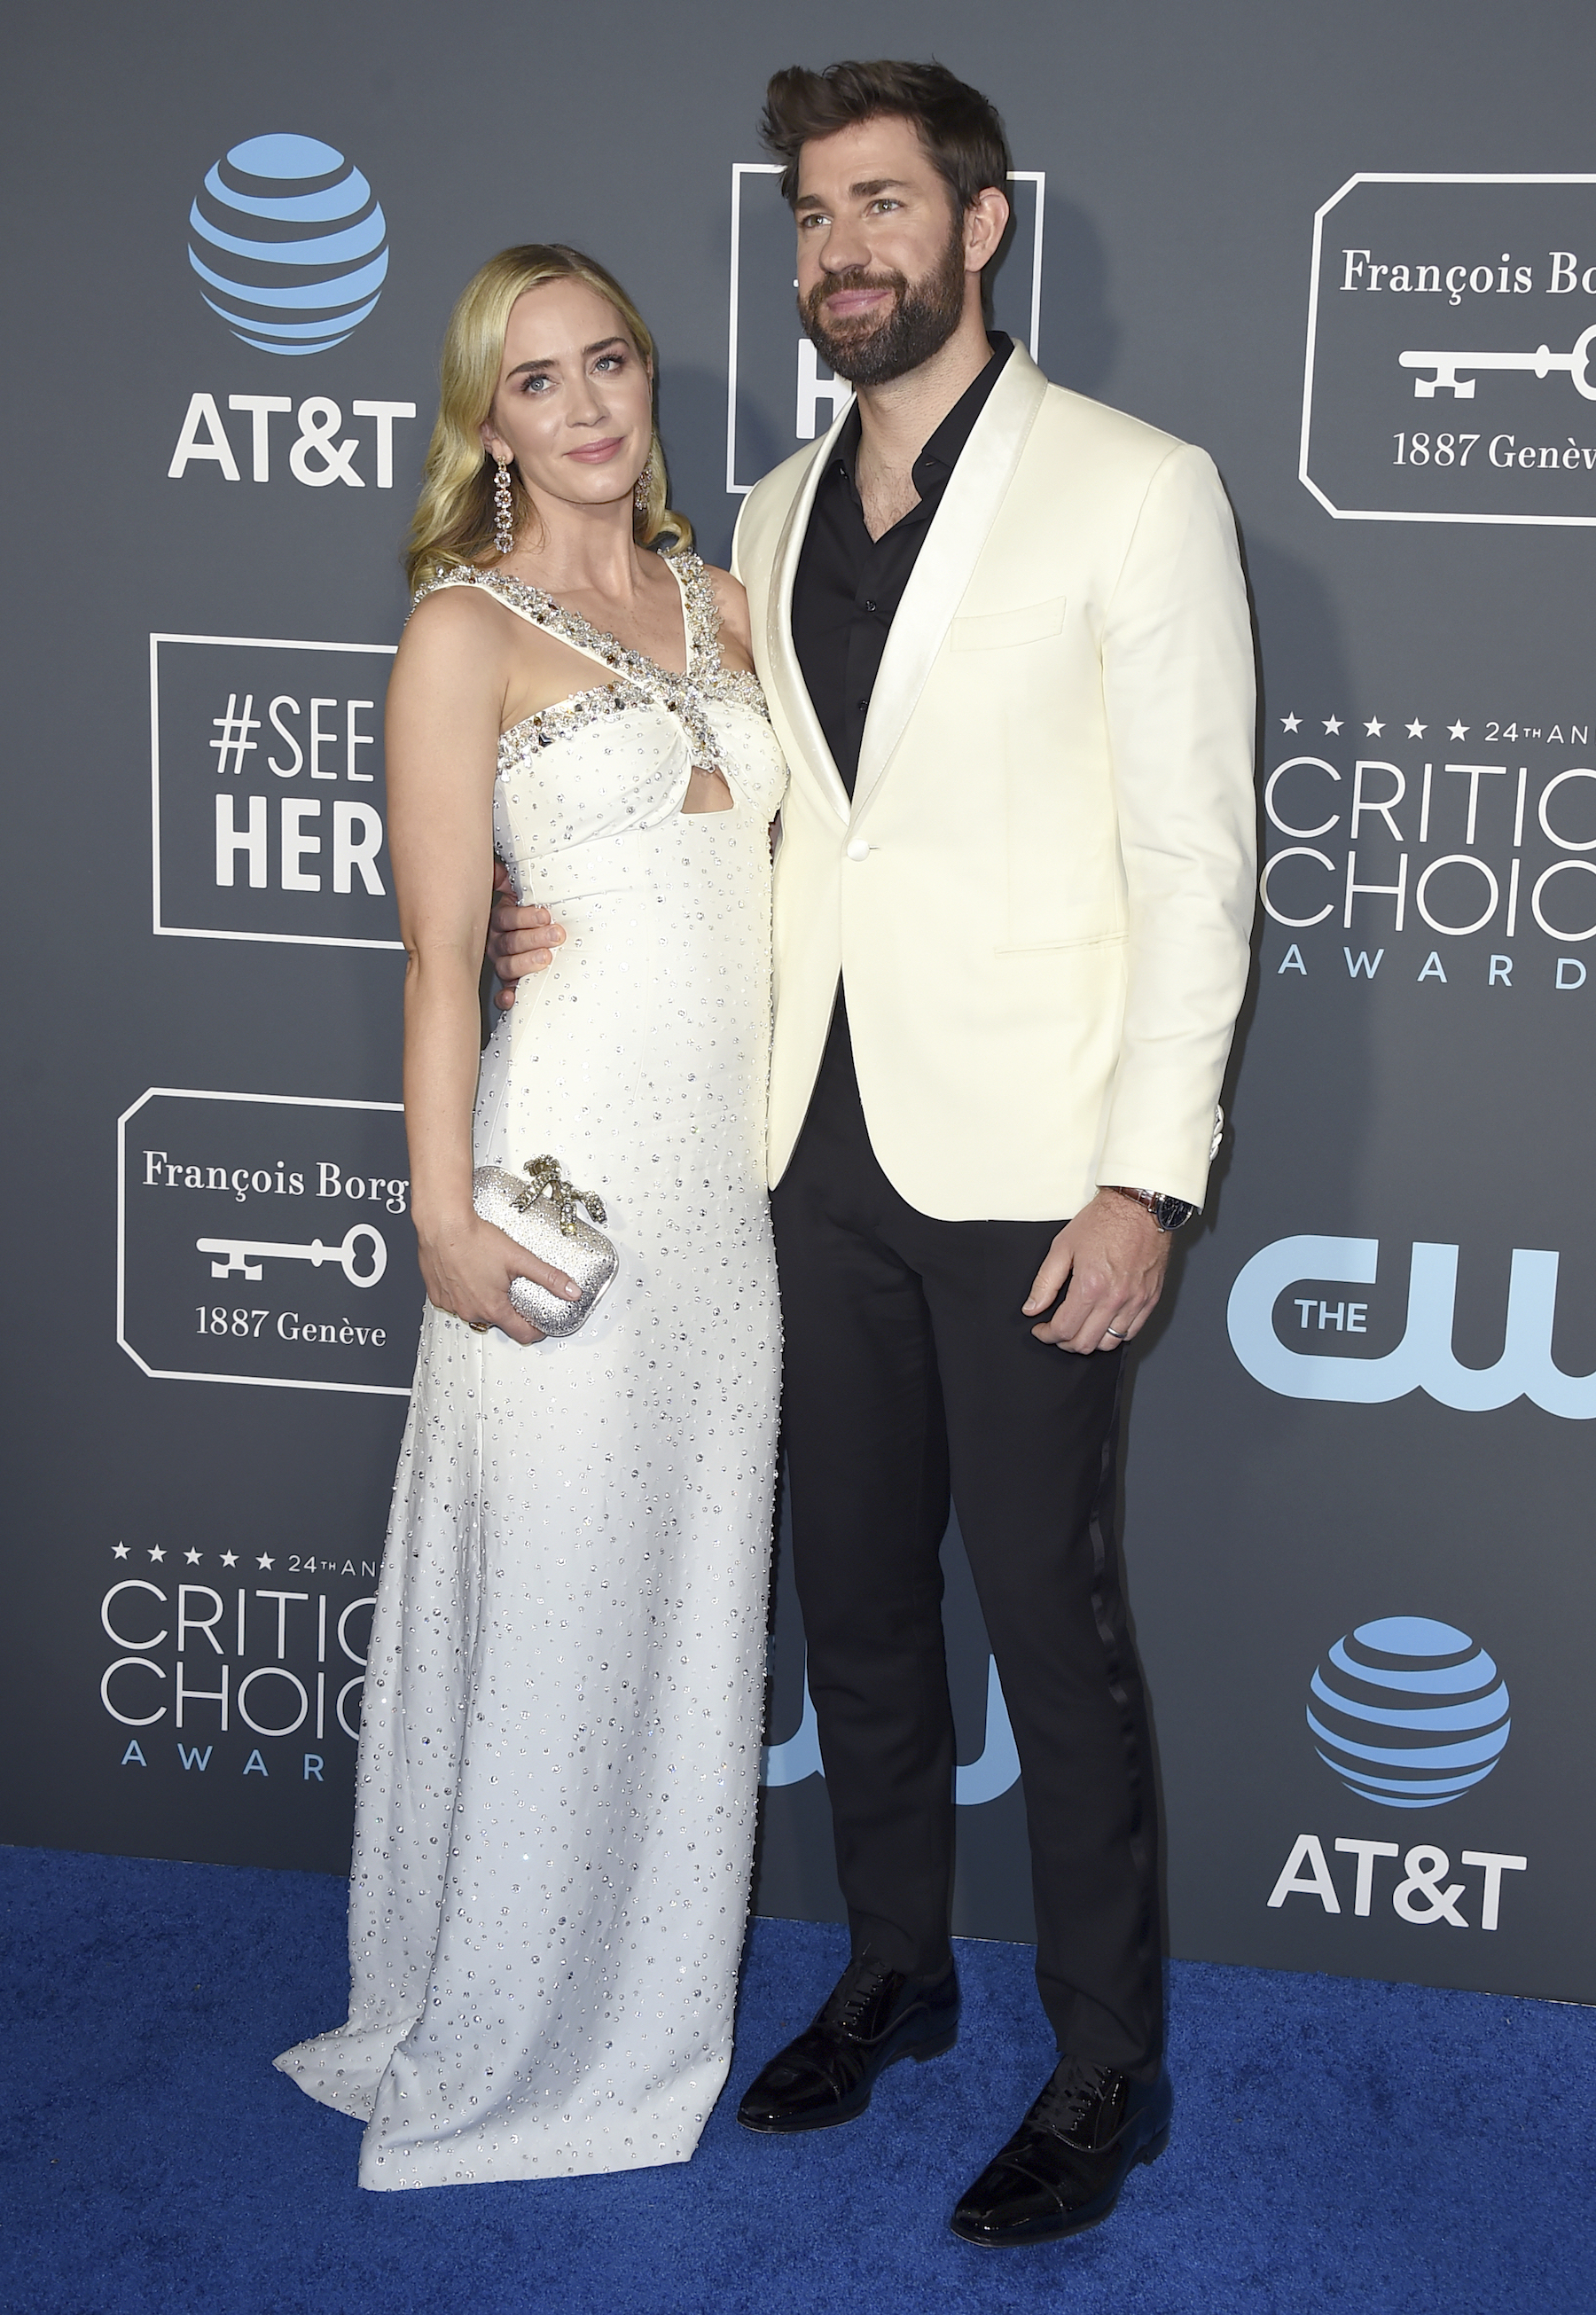 <div class='meta'><div class='origin-logo' data-origin='AP'></div><span class='caption-text' data-credit='Jordan Strauss/Invision/AP'>Emily Blunt, left, and John Krasinski arrive at the 24th annual Critics' Choice Awards on Sunday, Jan. 13, 2019, at the Barker Hangar in Santa Monica, Calif.</span></div>